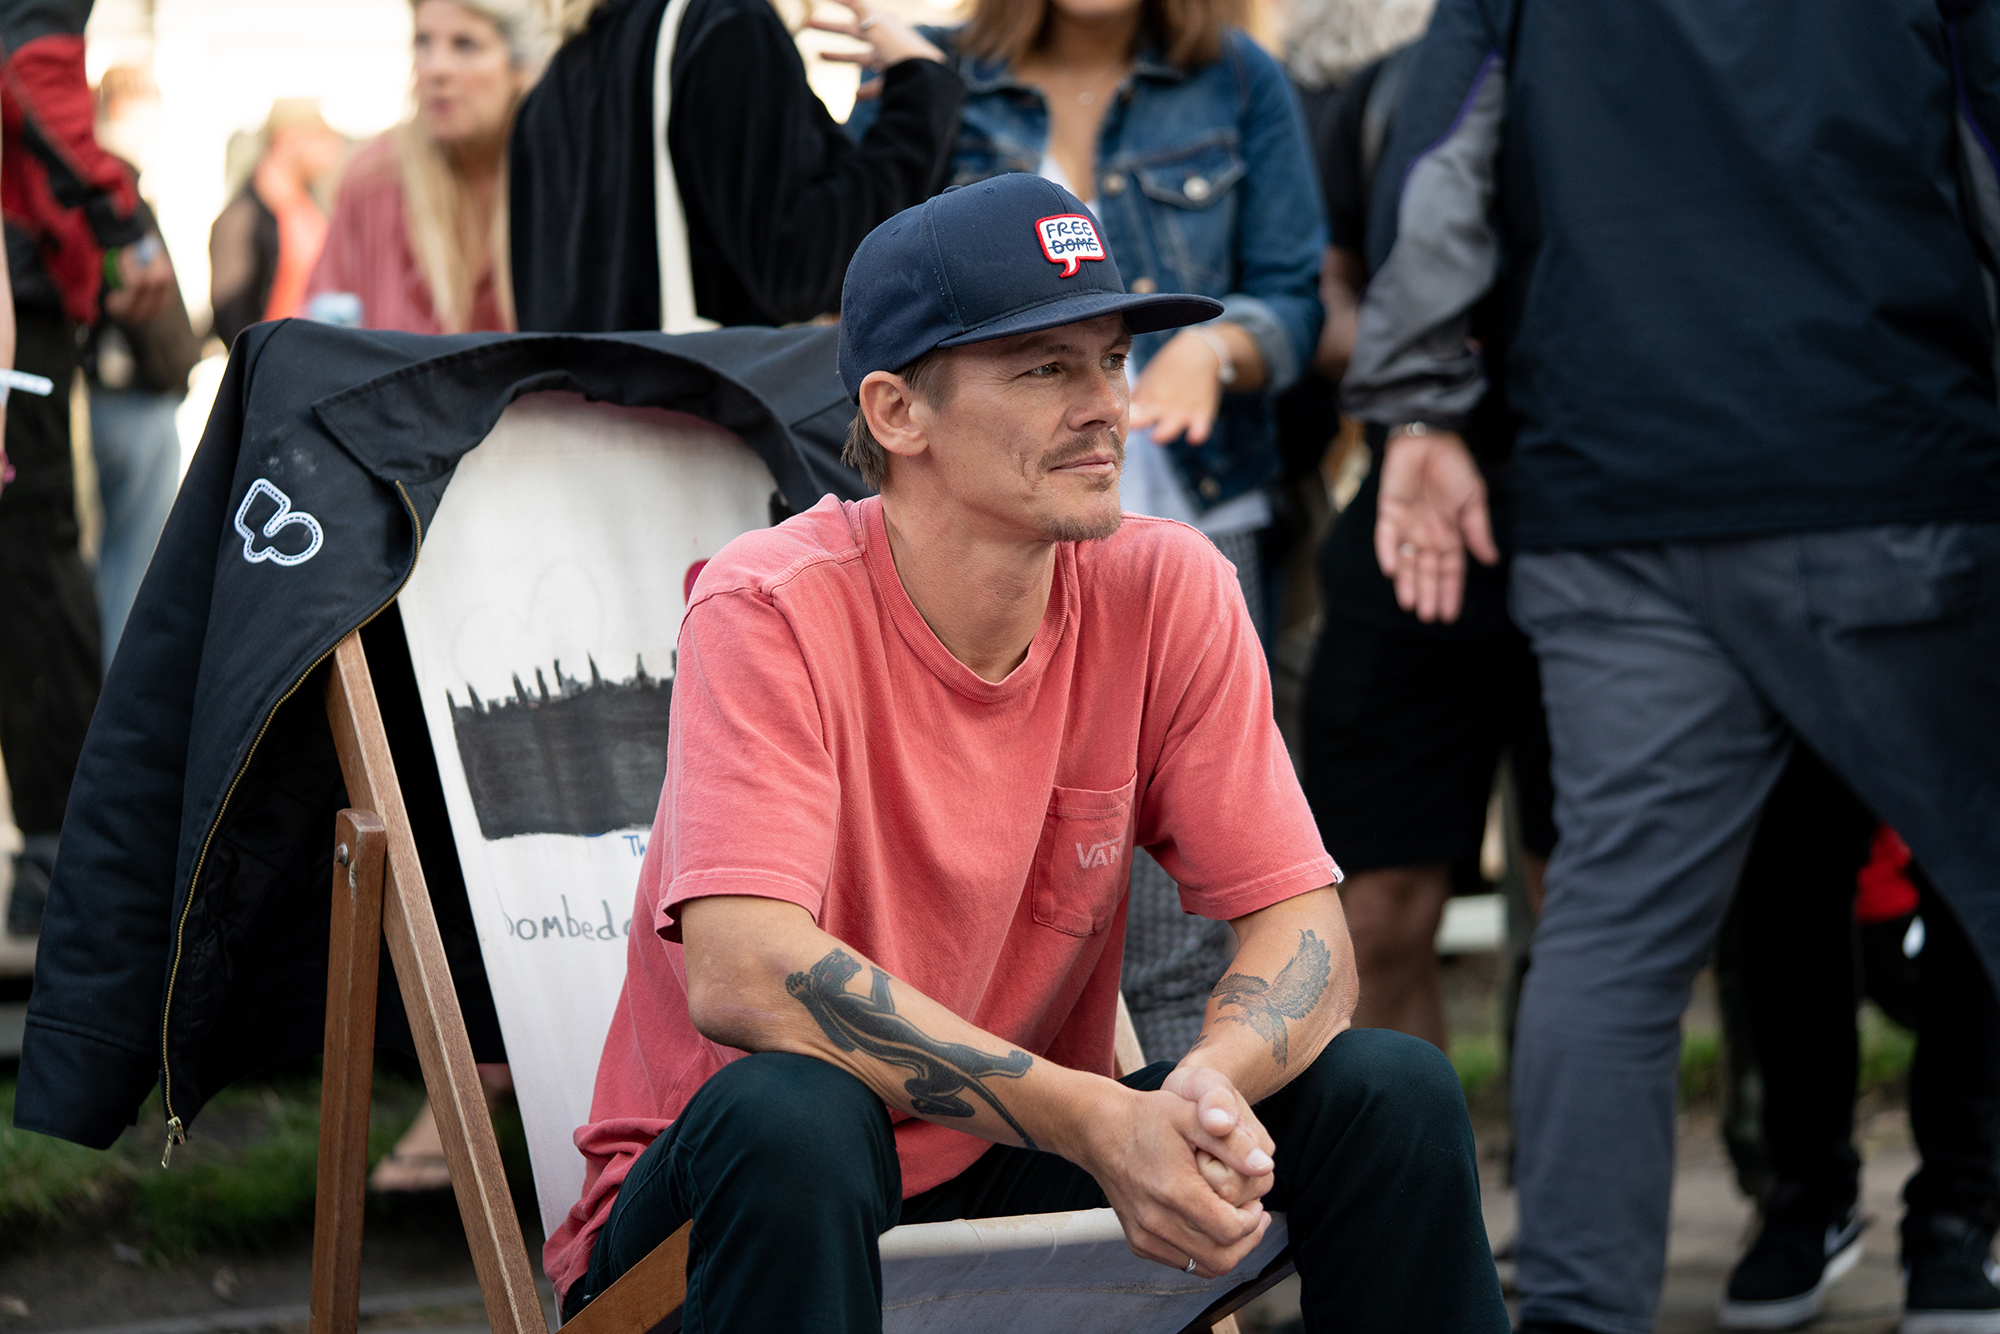 Celebrating 20 Years of Vans & Geoff Rowley – Event Recap